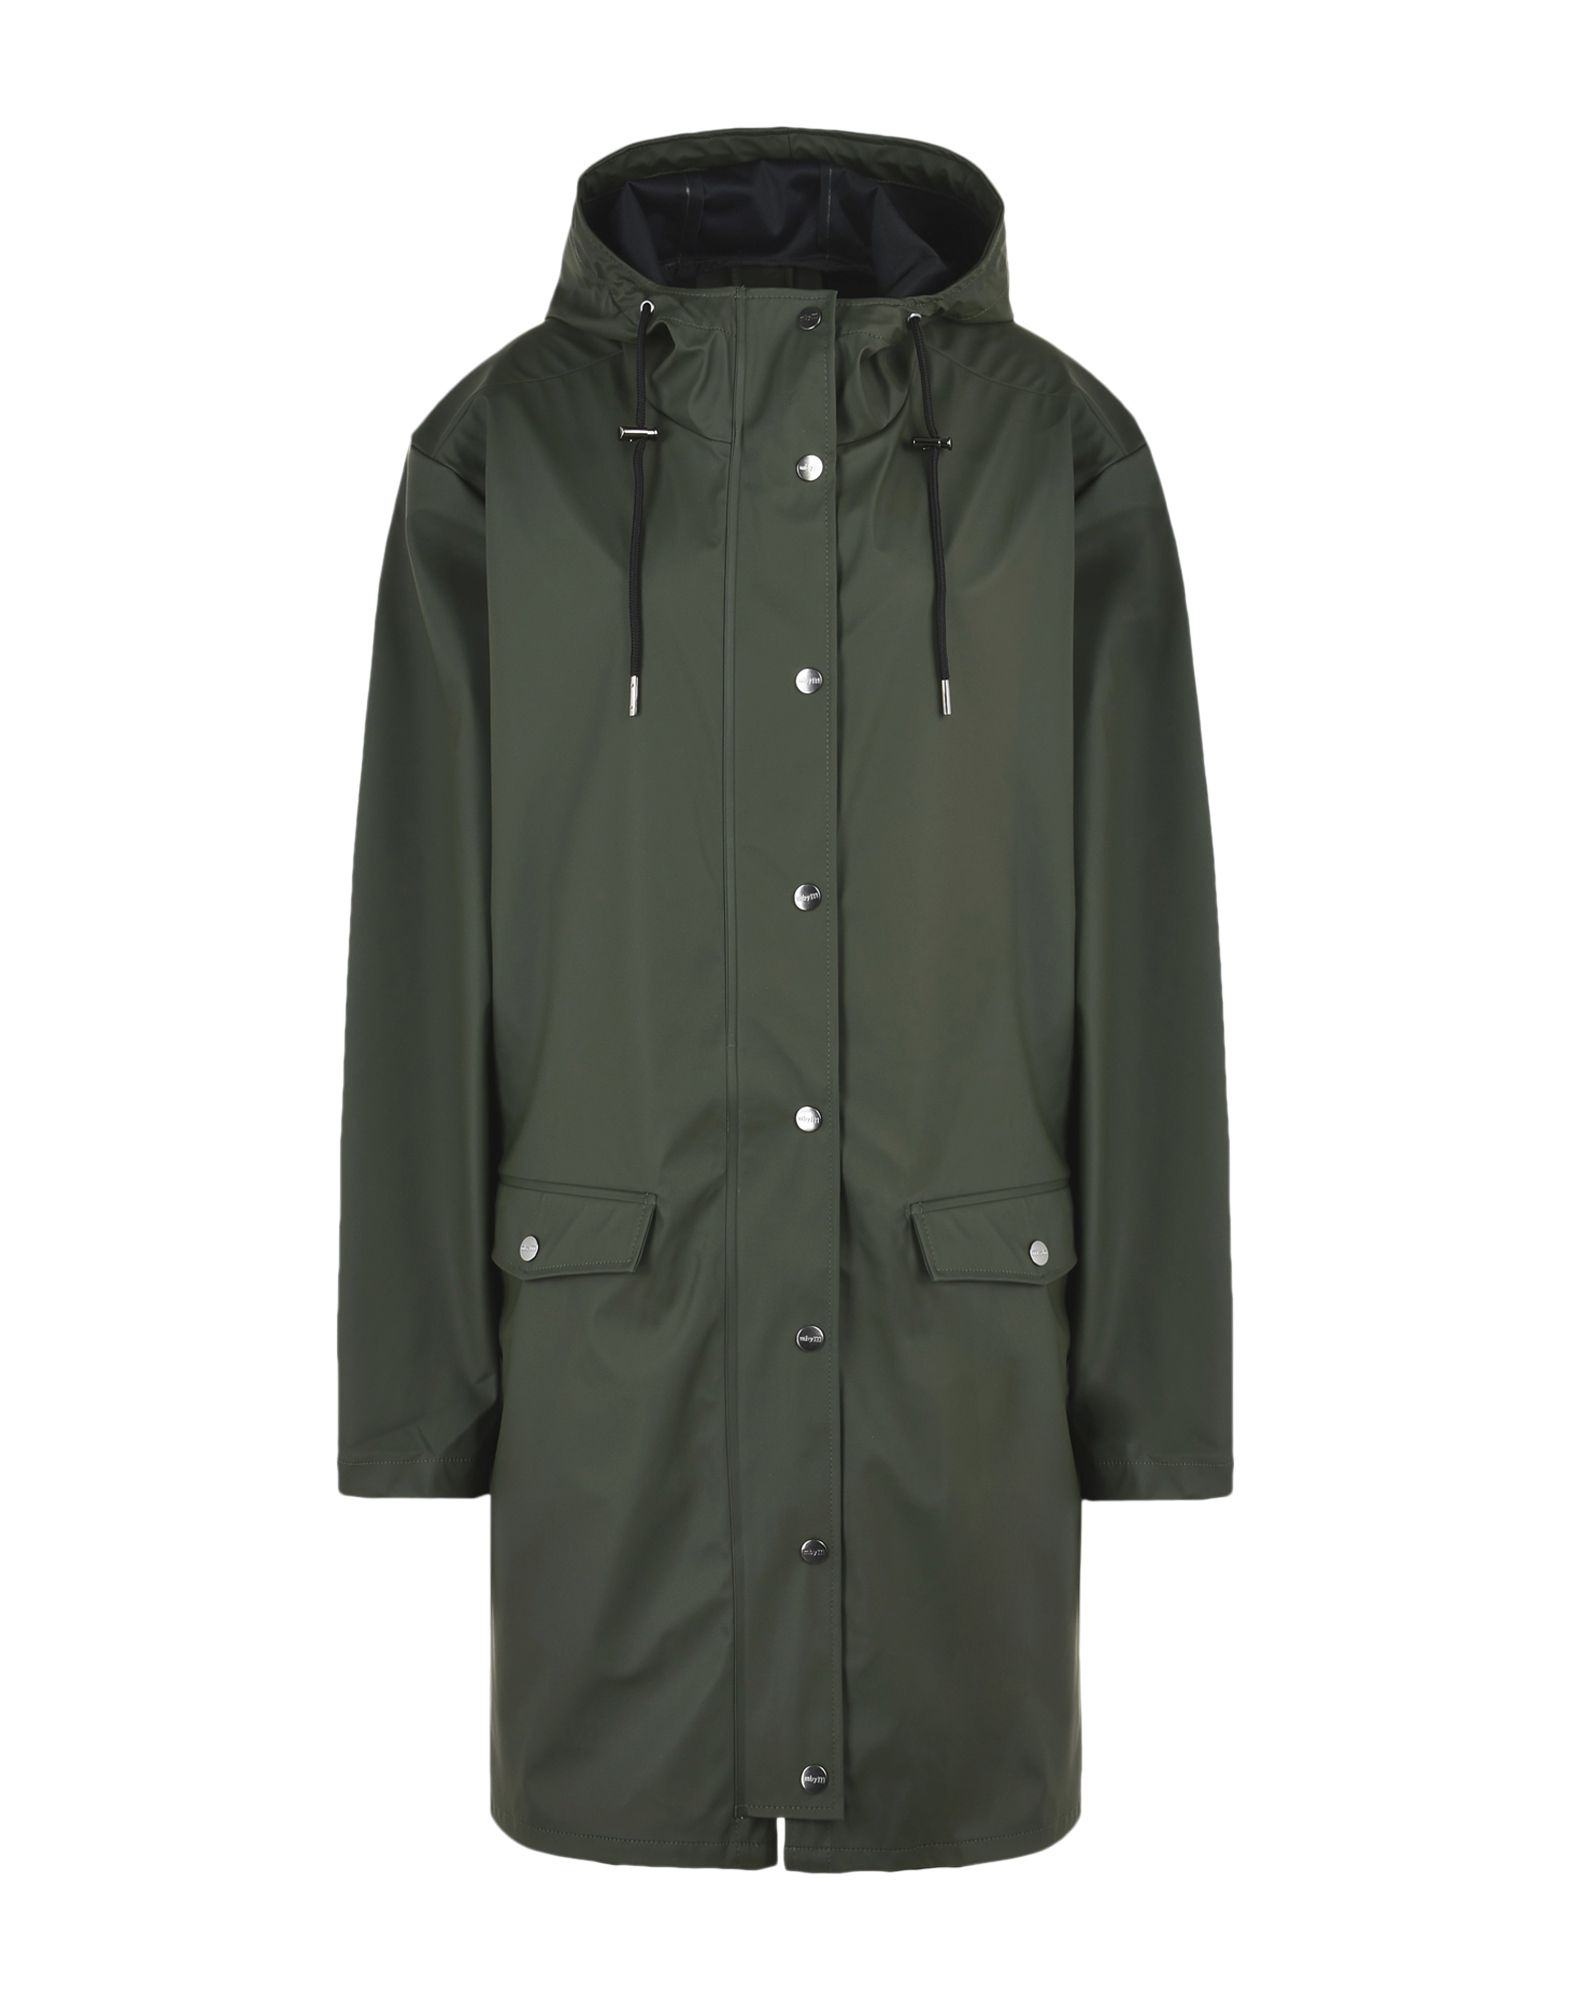 MBYM Full-Length Jacket in Military Green